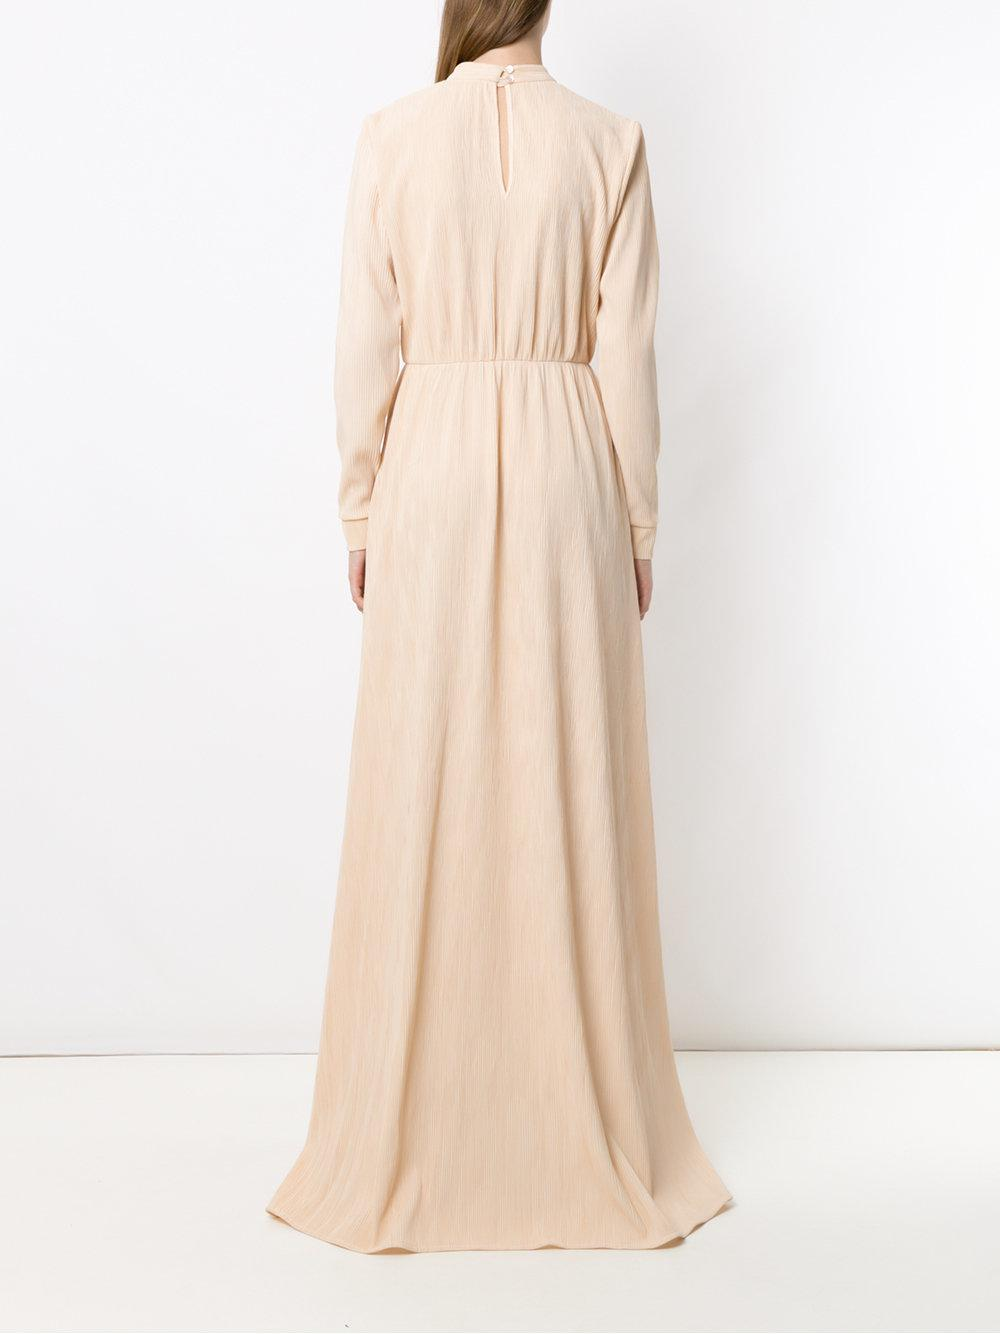 Cheap Sale 100% Authentic Laria dress - Nude & Neutrals OLYMPIAH The Best Store To Get Many Kinds Of Sale Online FznymMyuXj